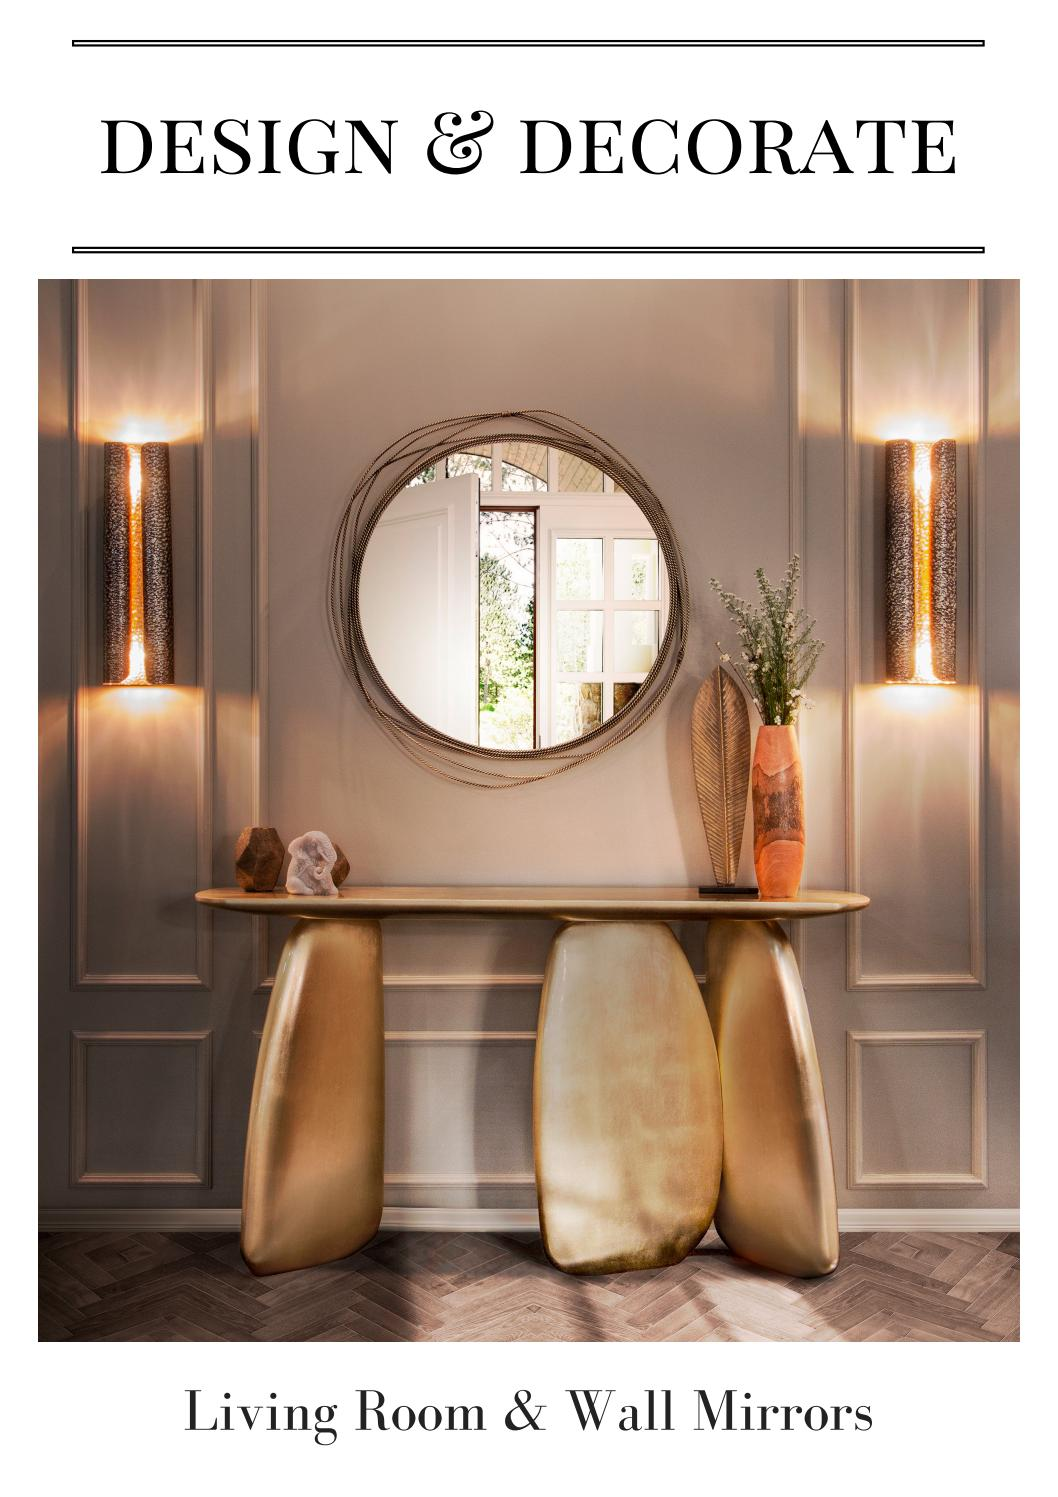 Design Decorate Living Room Wall Mirrors By Home Living Magazines Issuu